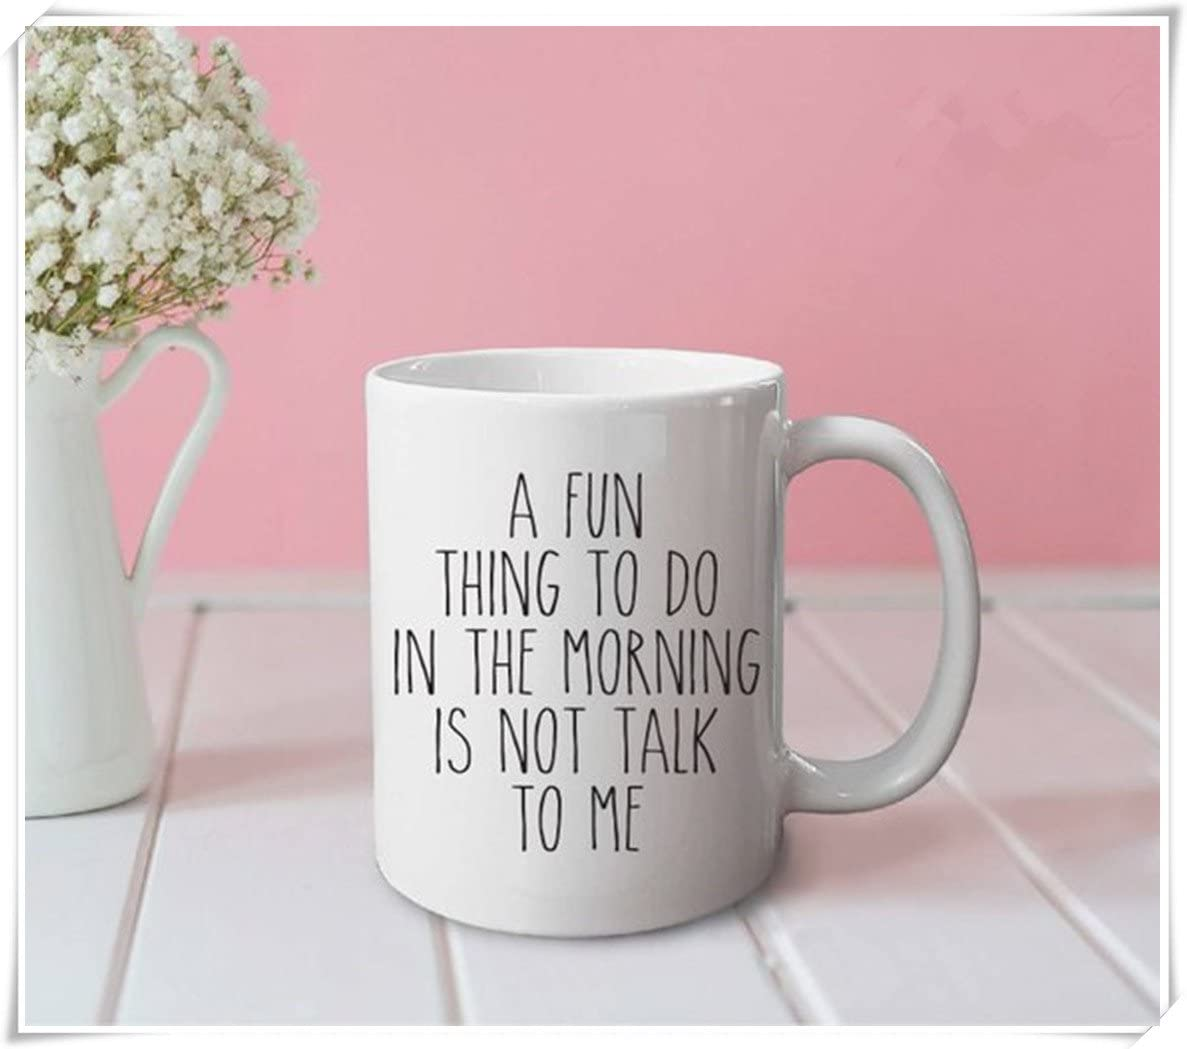 OttoRiven101 - A fun thing to do in the morning is not talk to me mug - funny mug, cute mug, office mug, gifts for her, gifts for him, coffee mug, 11oz Ceramic Coffee Mug/Tea Cup, High Gloss